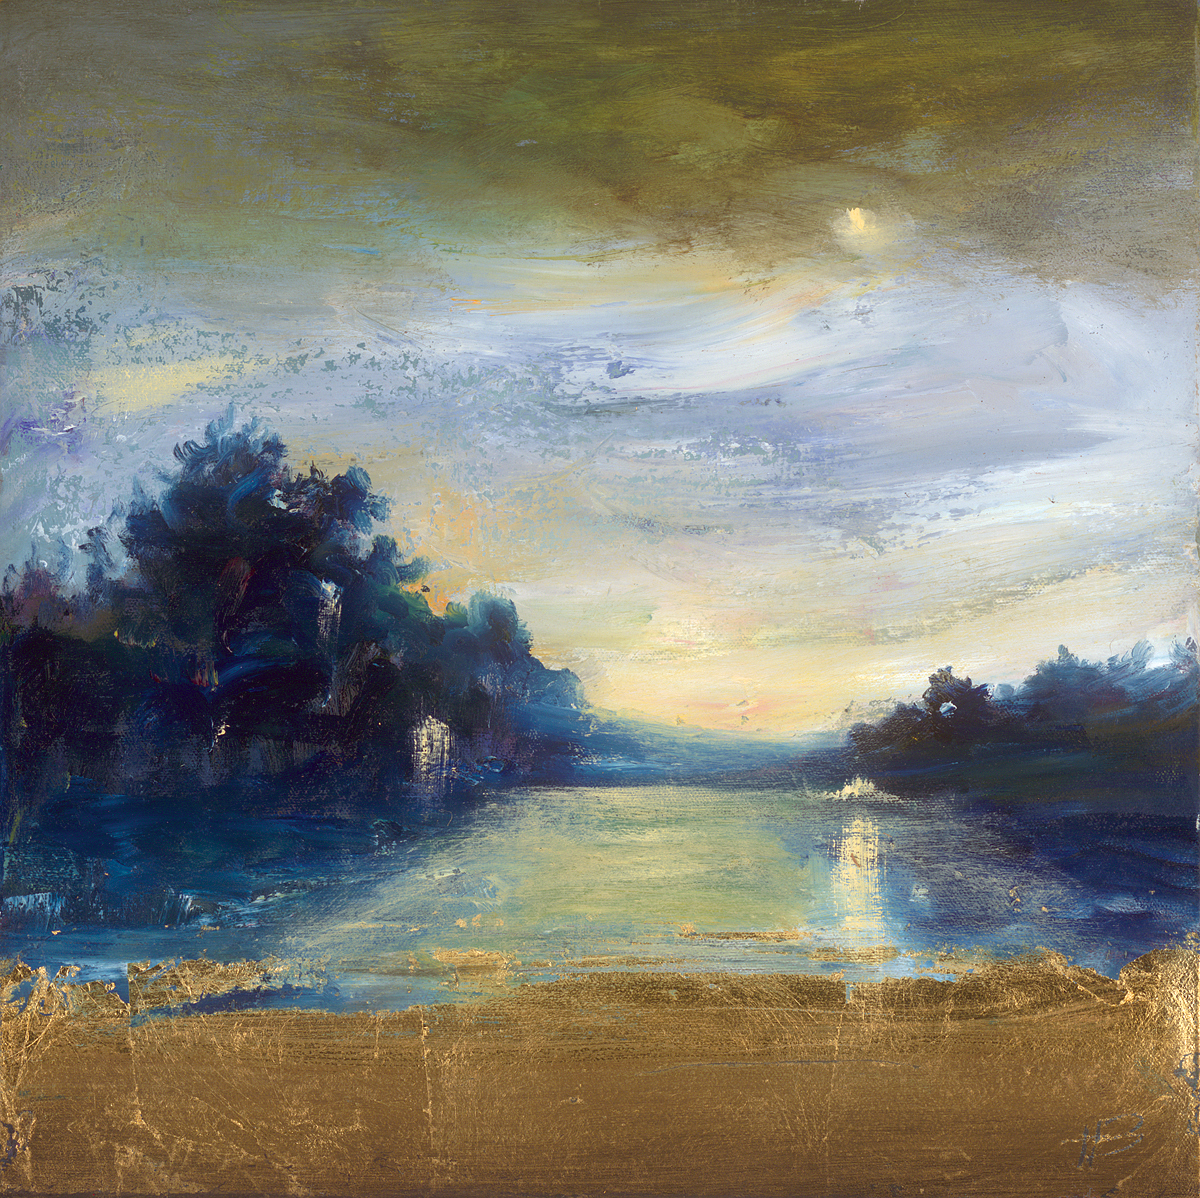 Drawn scenery emotional Painting (2008) Gallery by Landscape